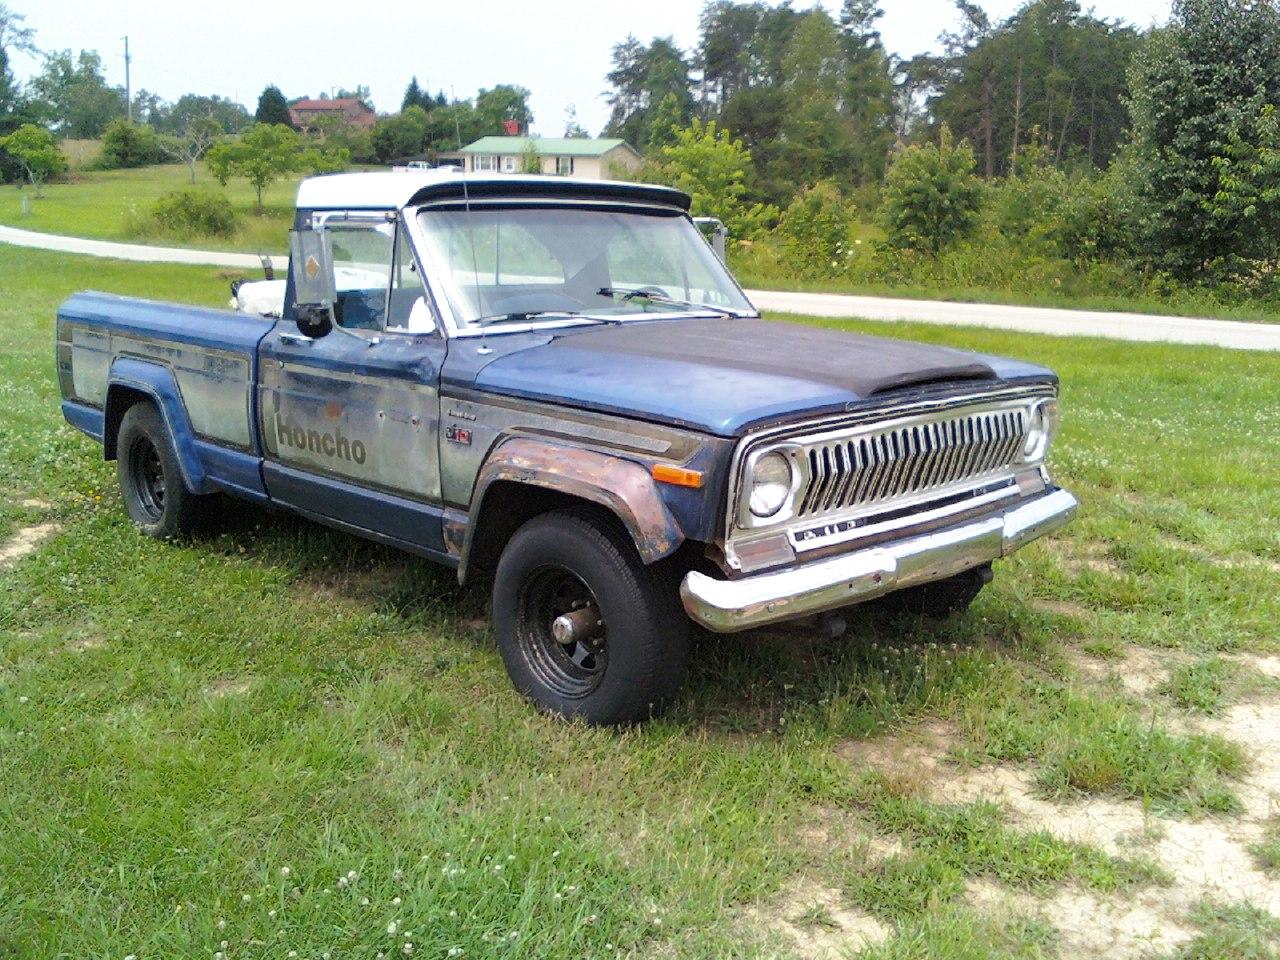 road jeep for sale details off calendar event honcho classifieds ad